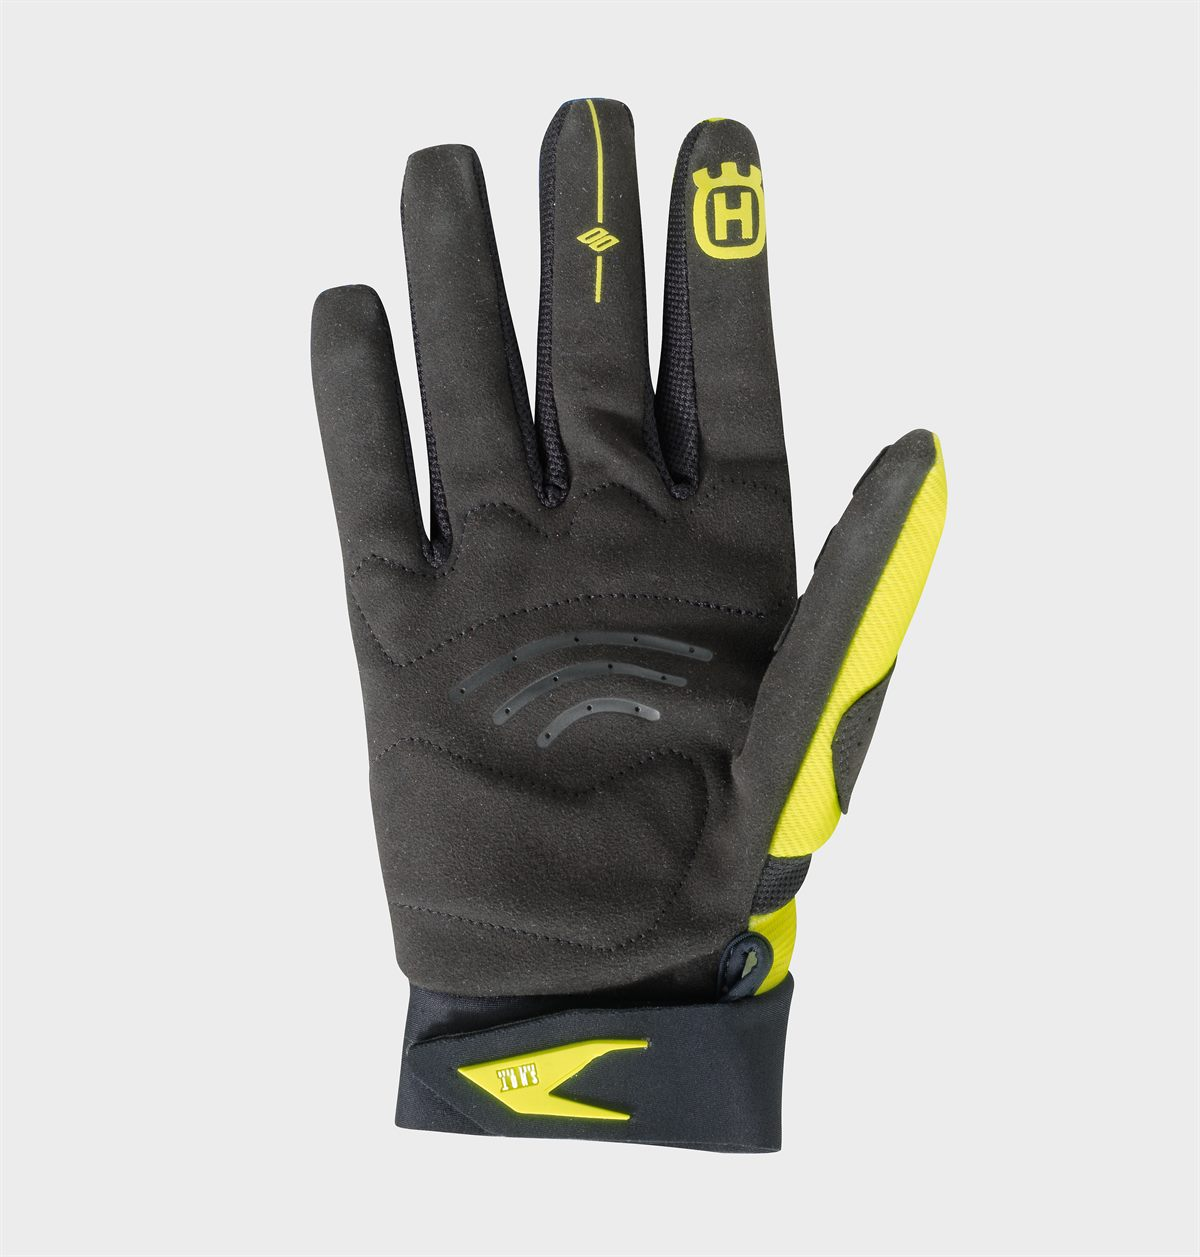 Husqvarna Motorcycles REPLICA FLASH COLLECTION - FACTORY REPLICA GLOVES palm